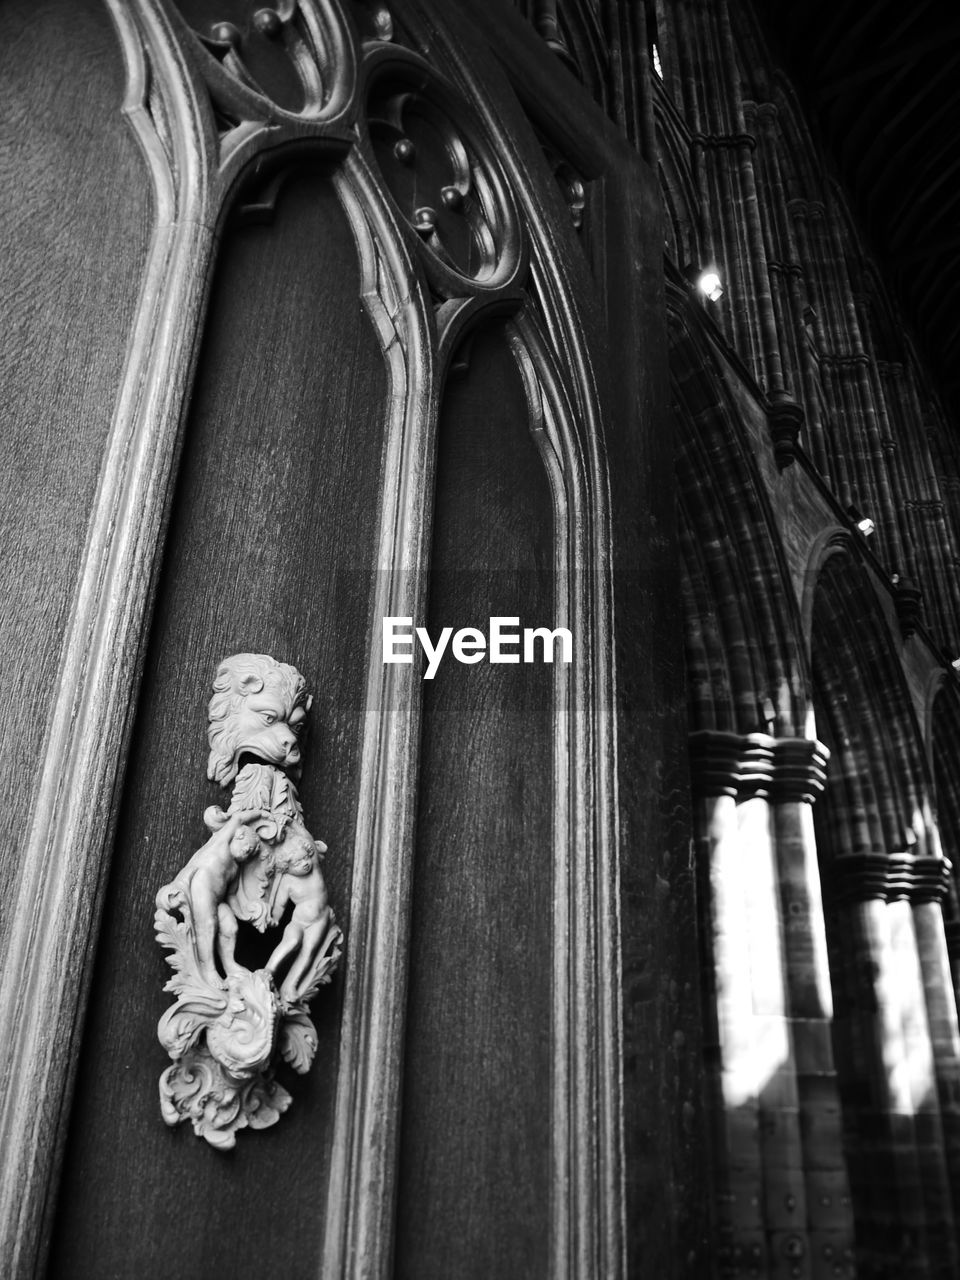 low angle view, spirituality, architecture, no people, religion, built structure, place of worship, belief, indoors, art and craft, sculpture, representation, pattern, the past, creativity, building, ornate, architectural column, carving, floral pattern